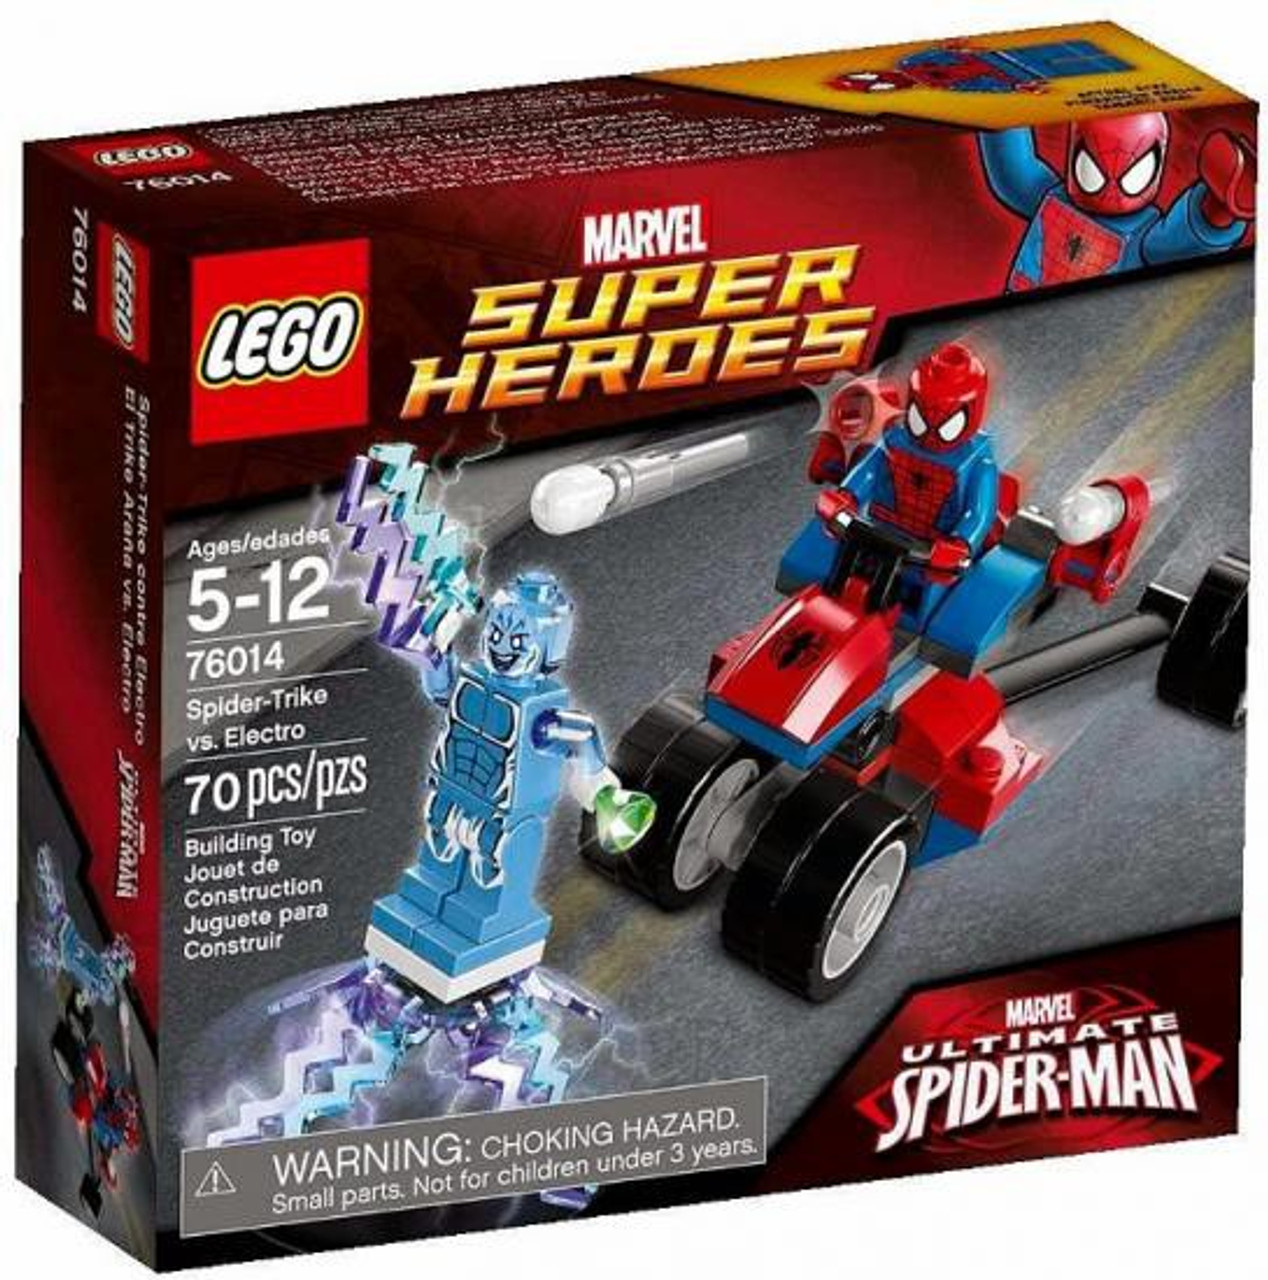 LEGO Marvel Super Heroes Ultimate Spider-Man Spider-Trike vs. Electro Set #76014